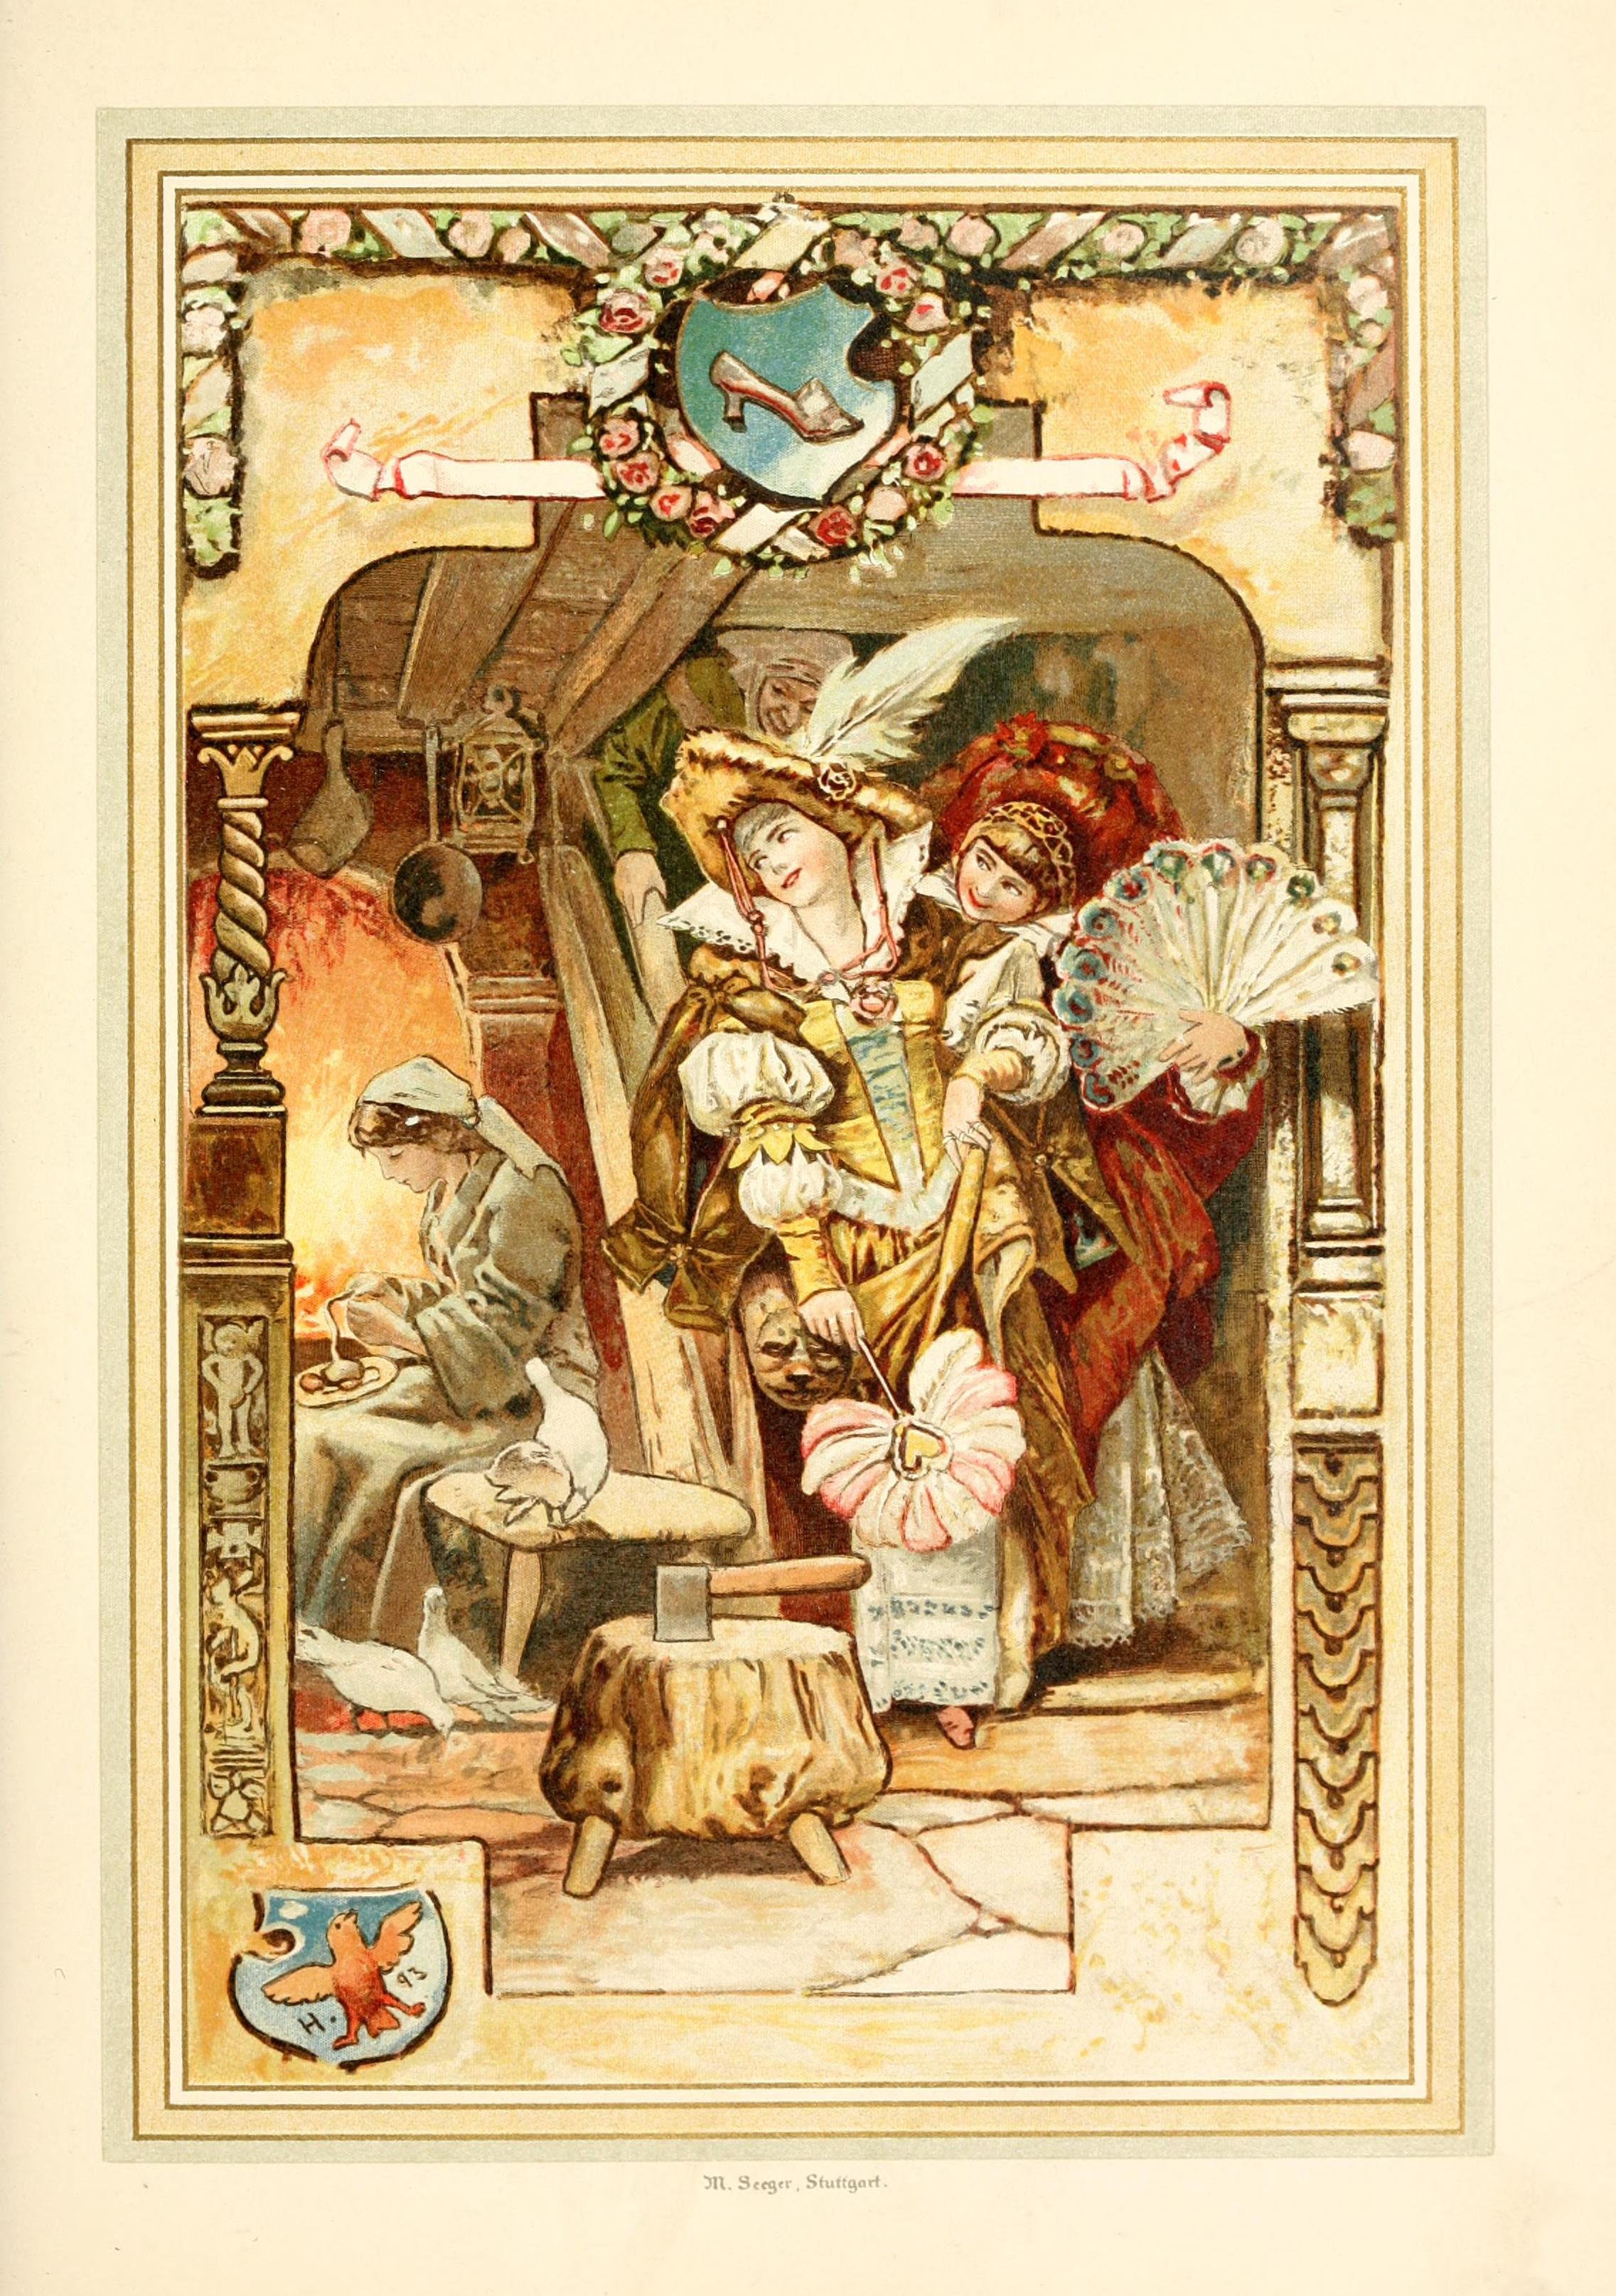 a comparison of the grimm brothers and charles perrault in the different versions of cinderella An illustrated treasury of grimm's fairy tales: cinderella, sleeping beauty, hansel and gretel and many more classic stories may 15, 2013 by grimm, jacob and wilhelm and daniela drescher.